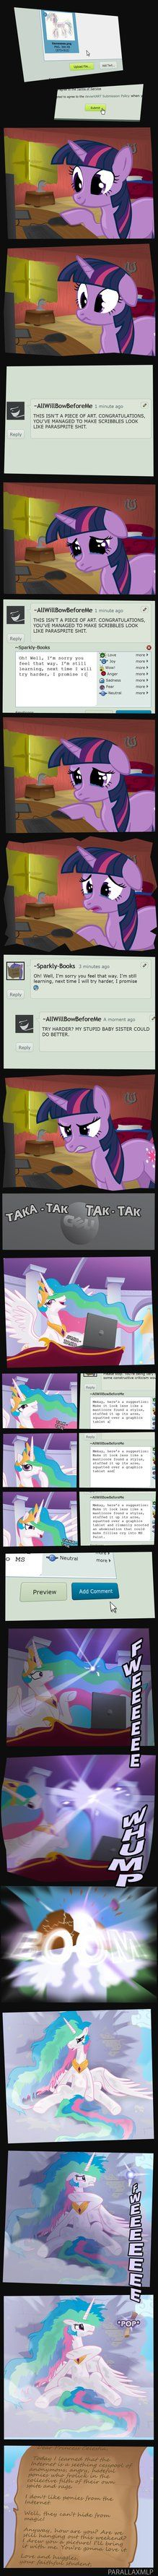 Trollestia trolling deviantArt. Cyber bullying is wrong, Tia. This is I'm gonna go play minecraft with Luna, you jerk.